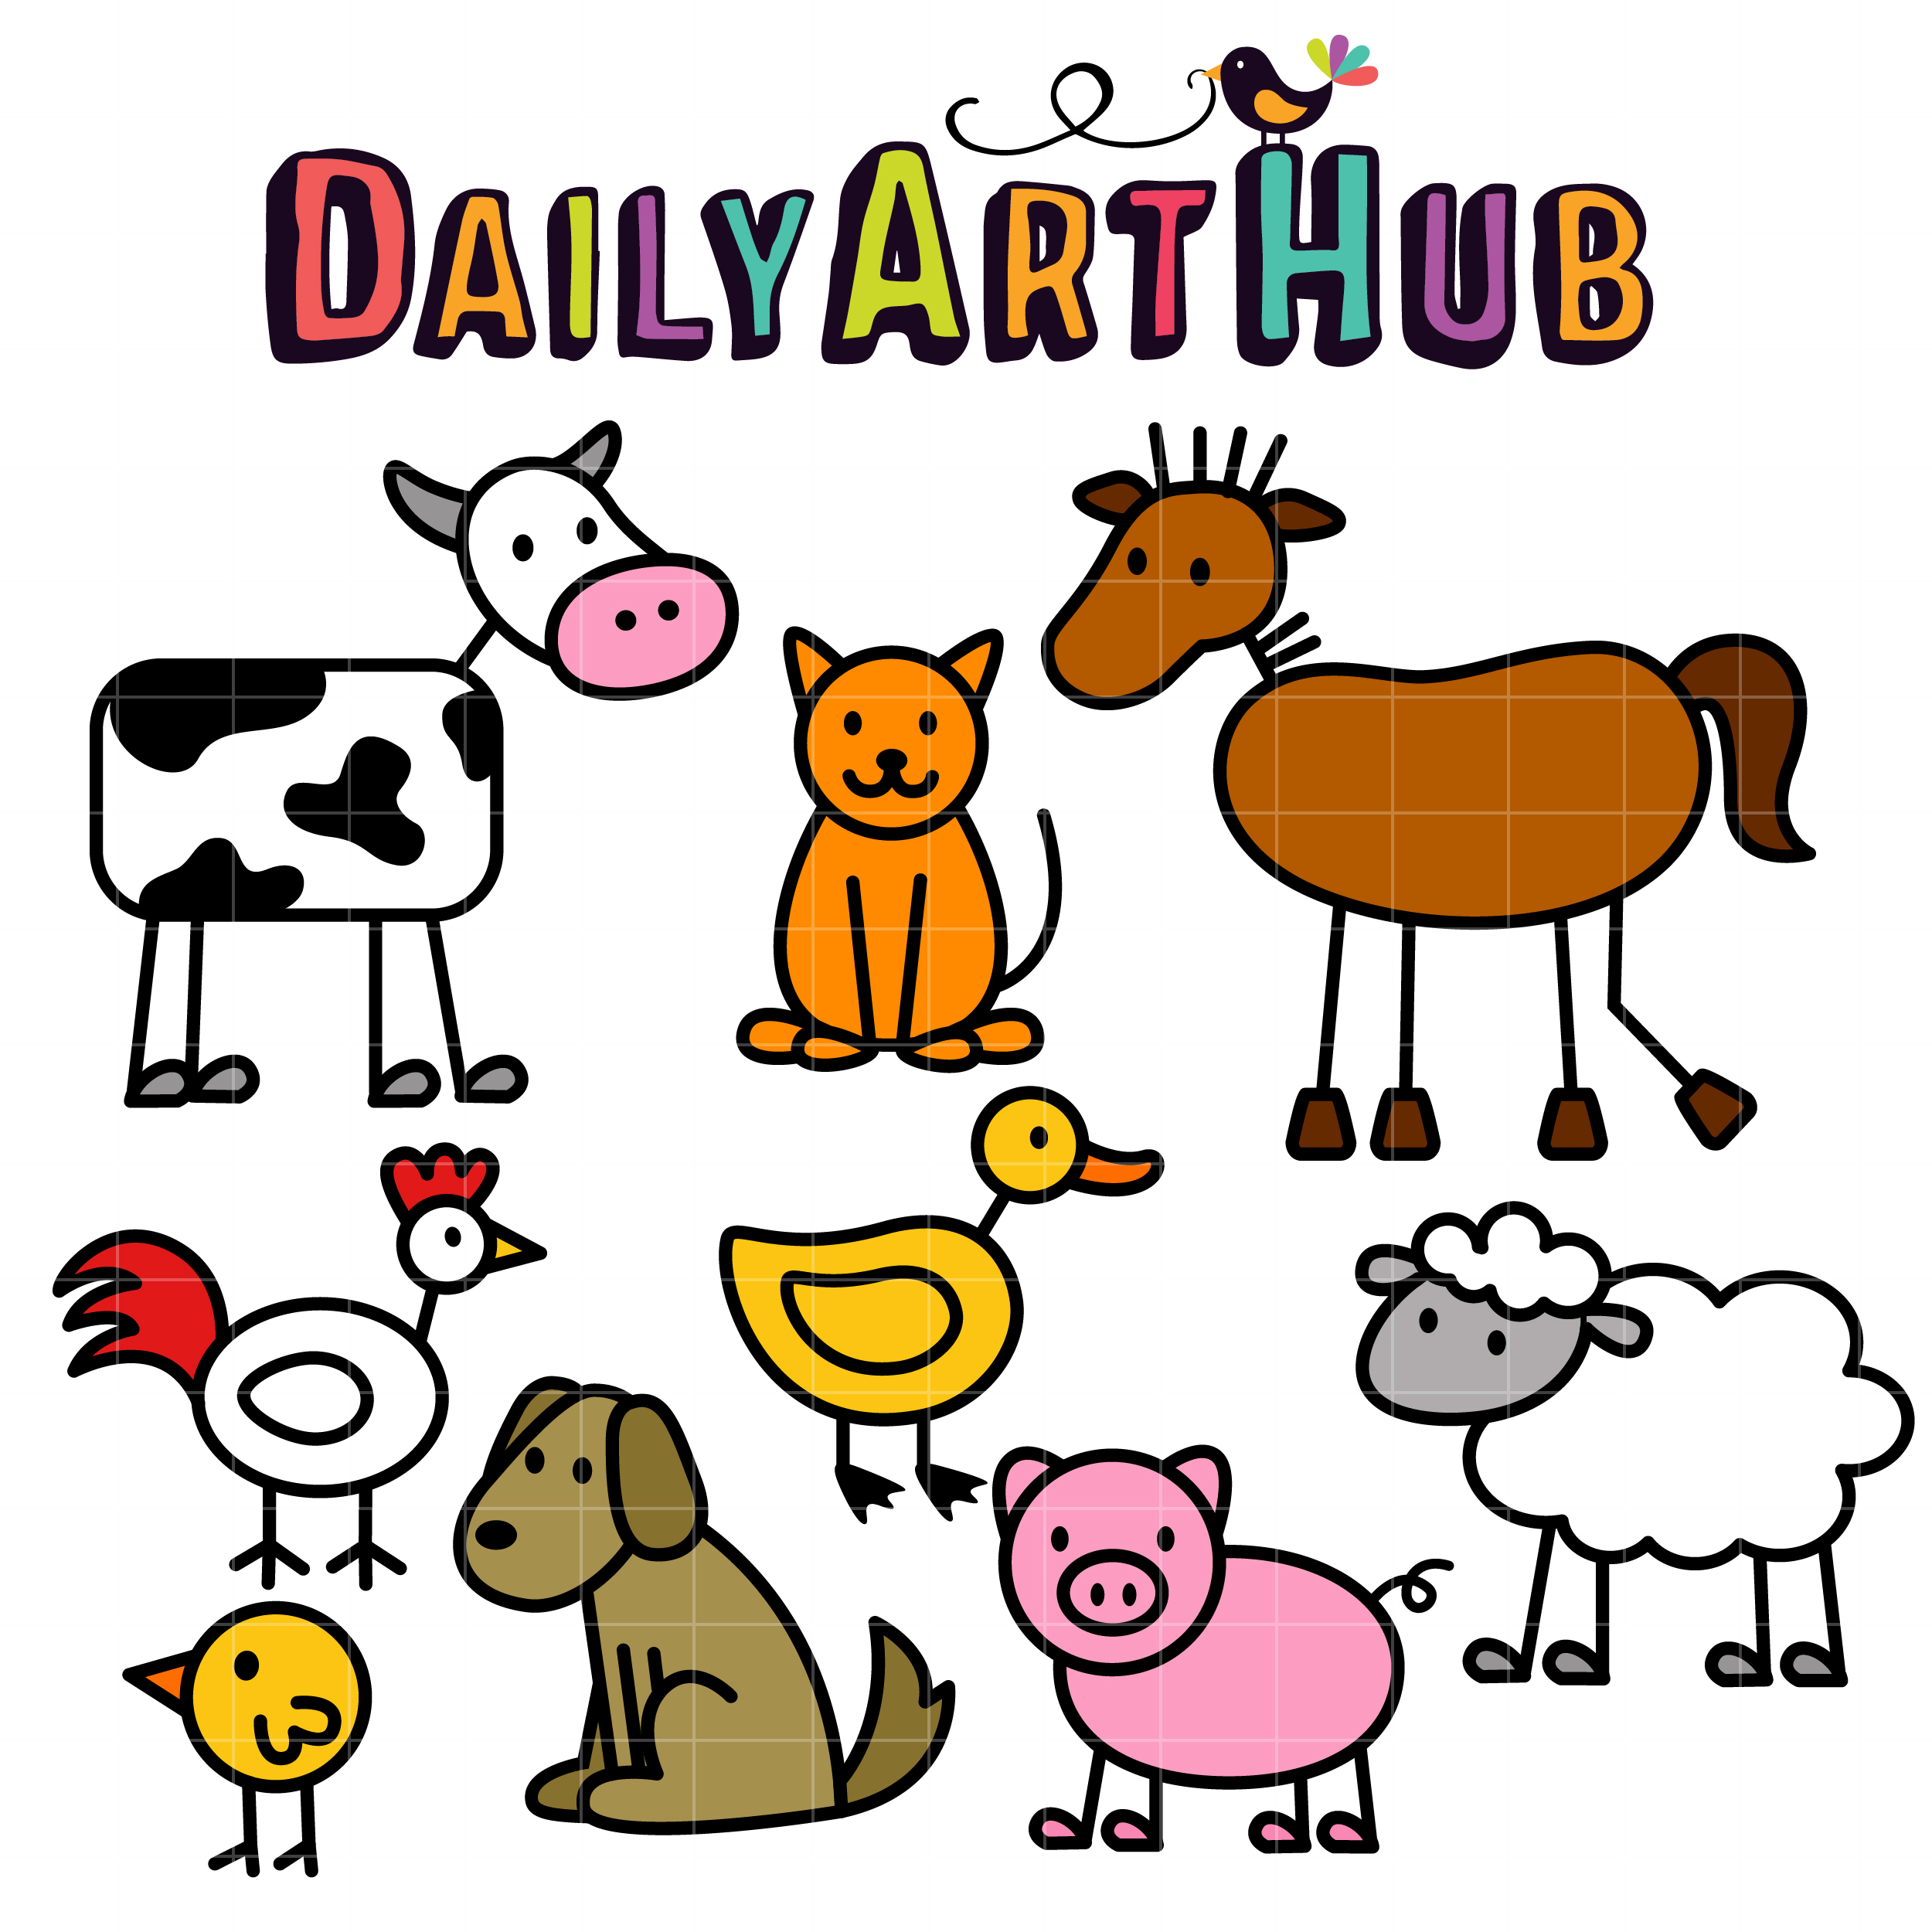 Free Farm Animal Clipart at GetDrawings.com.